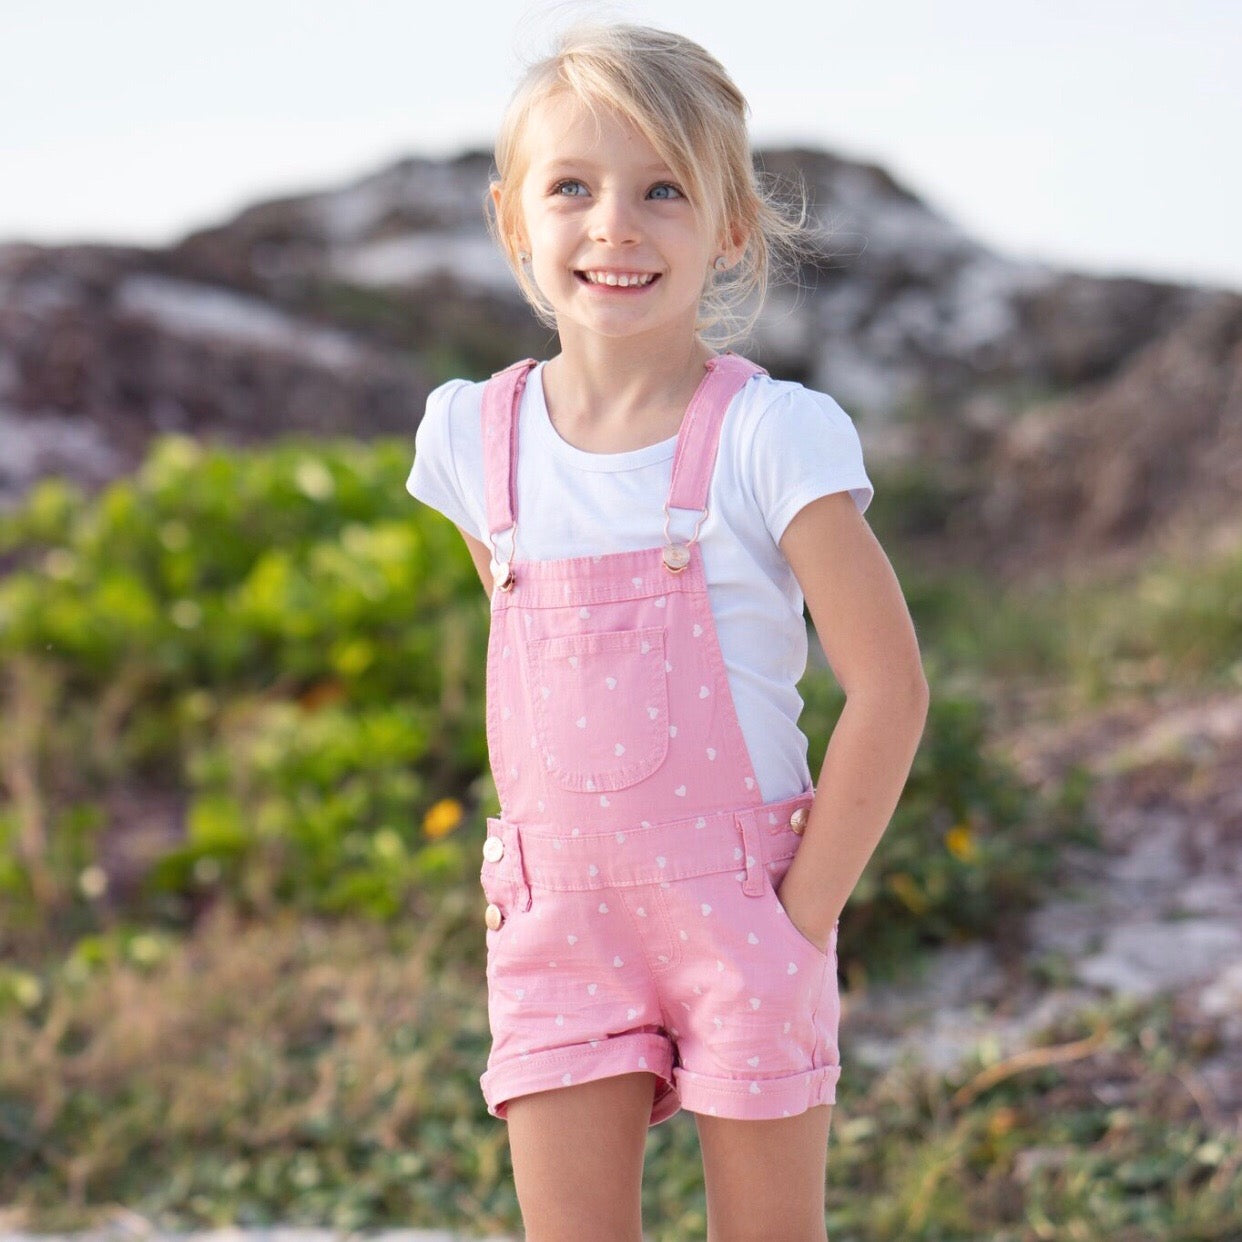 ad2aebd7b Toddler Girls Pink Heart Overalls & White Tee Set